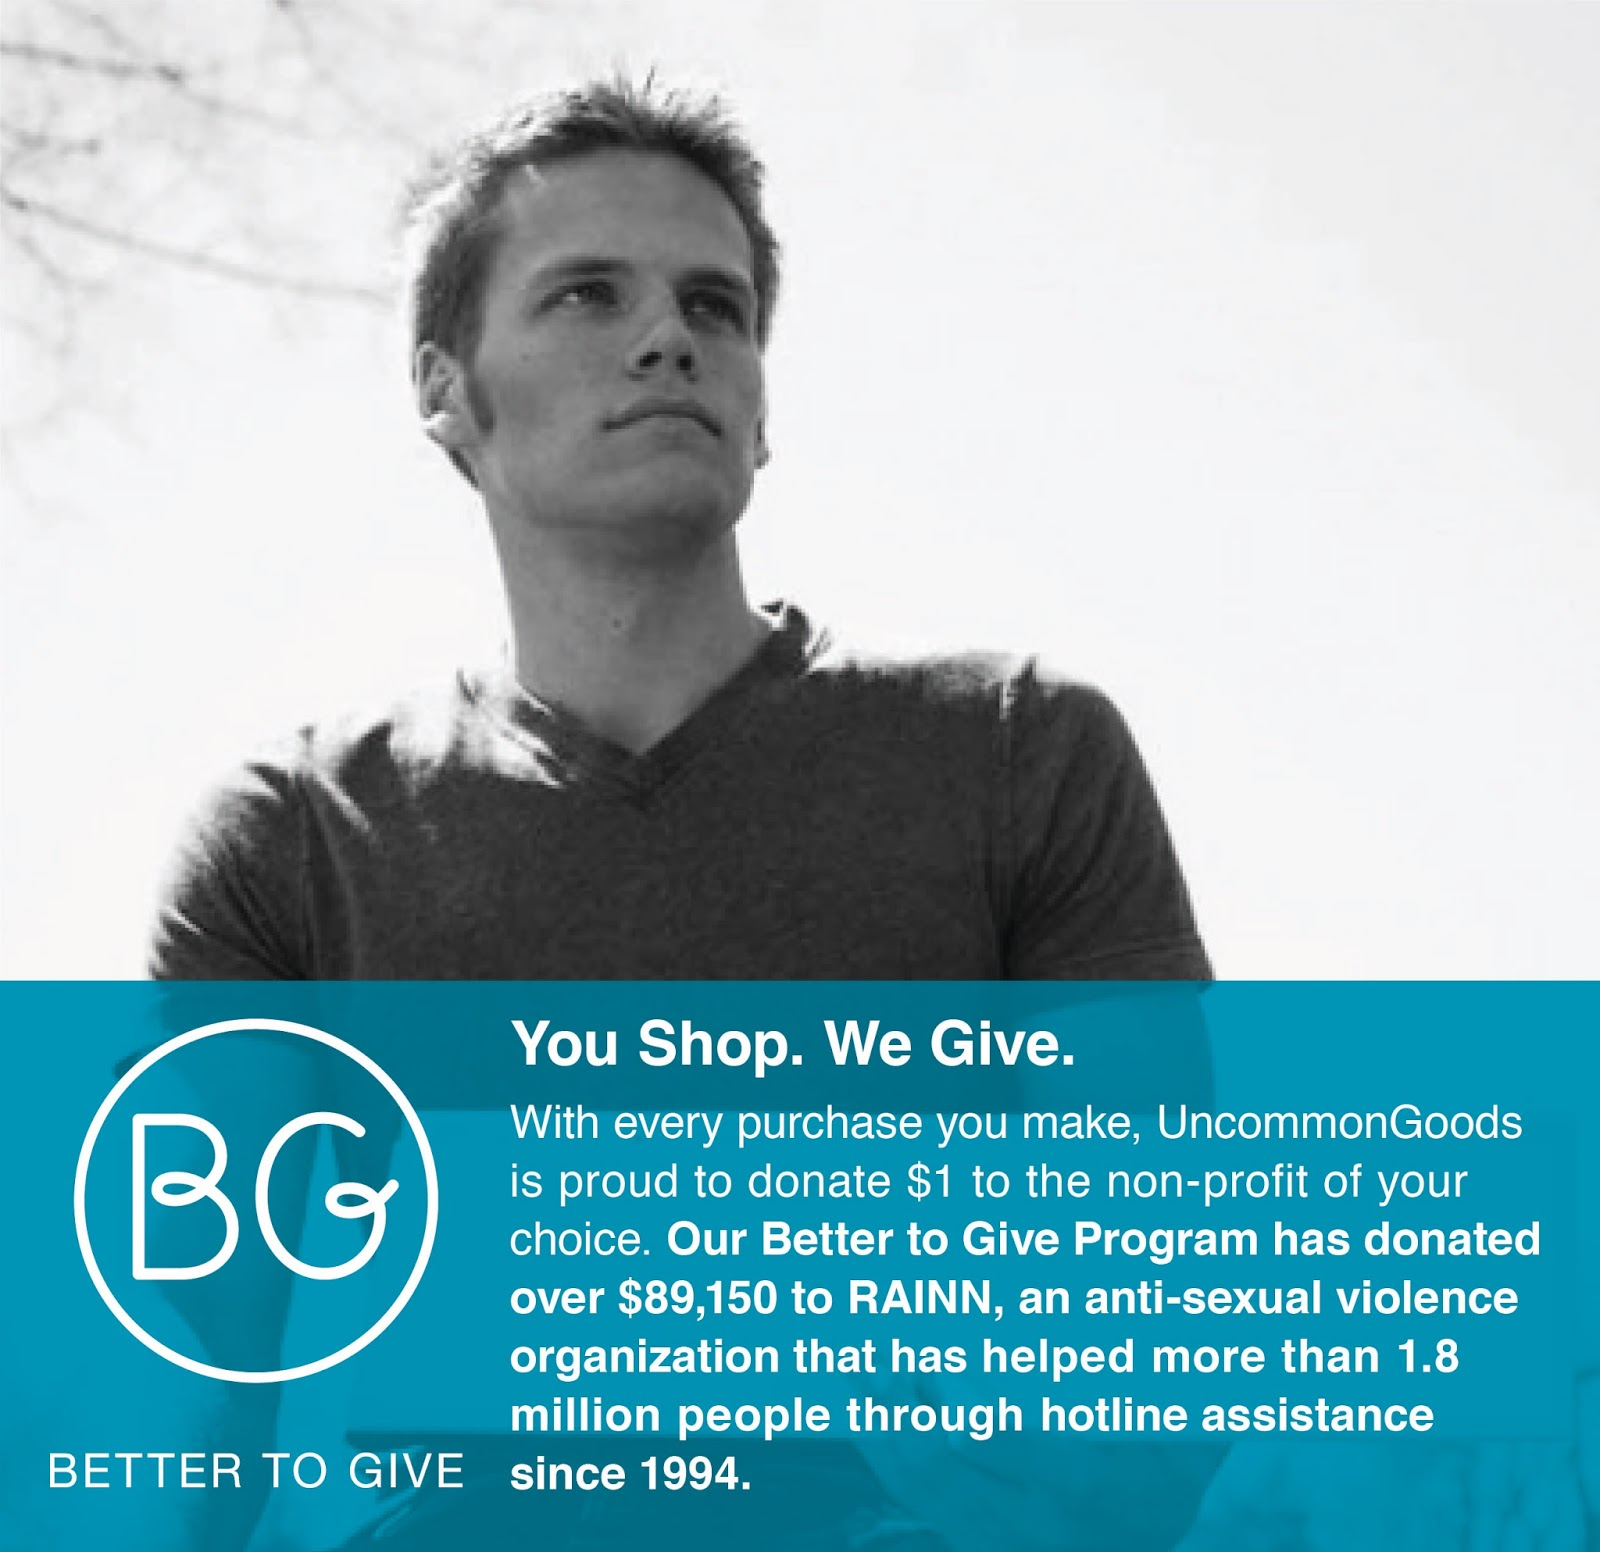 Better to Give charity program from UncommonGoods!